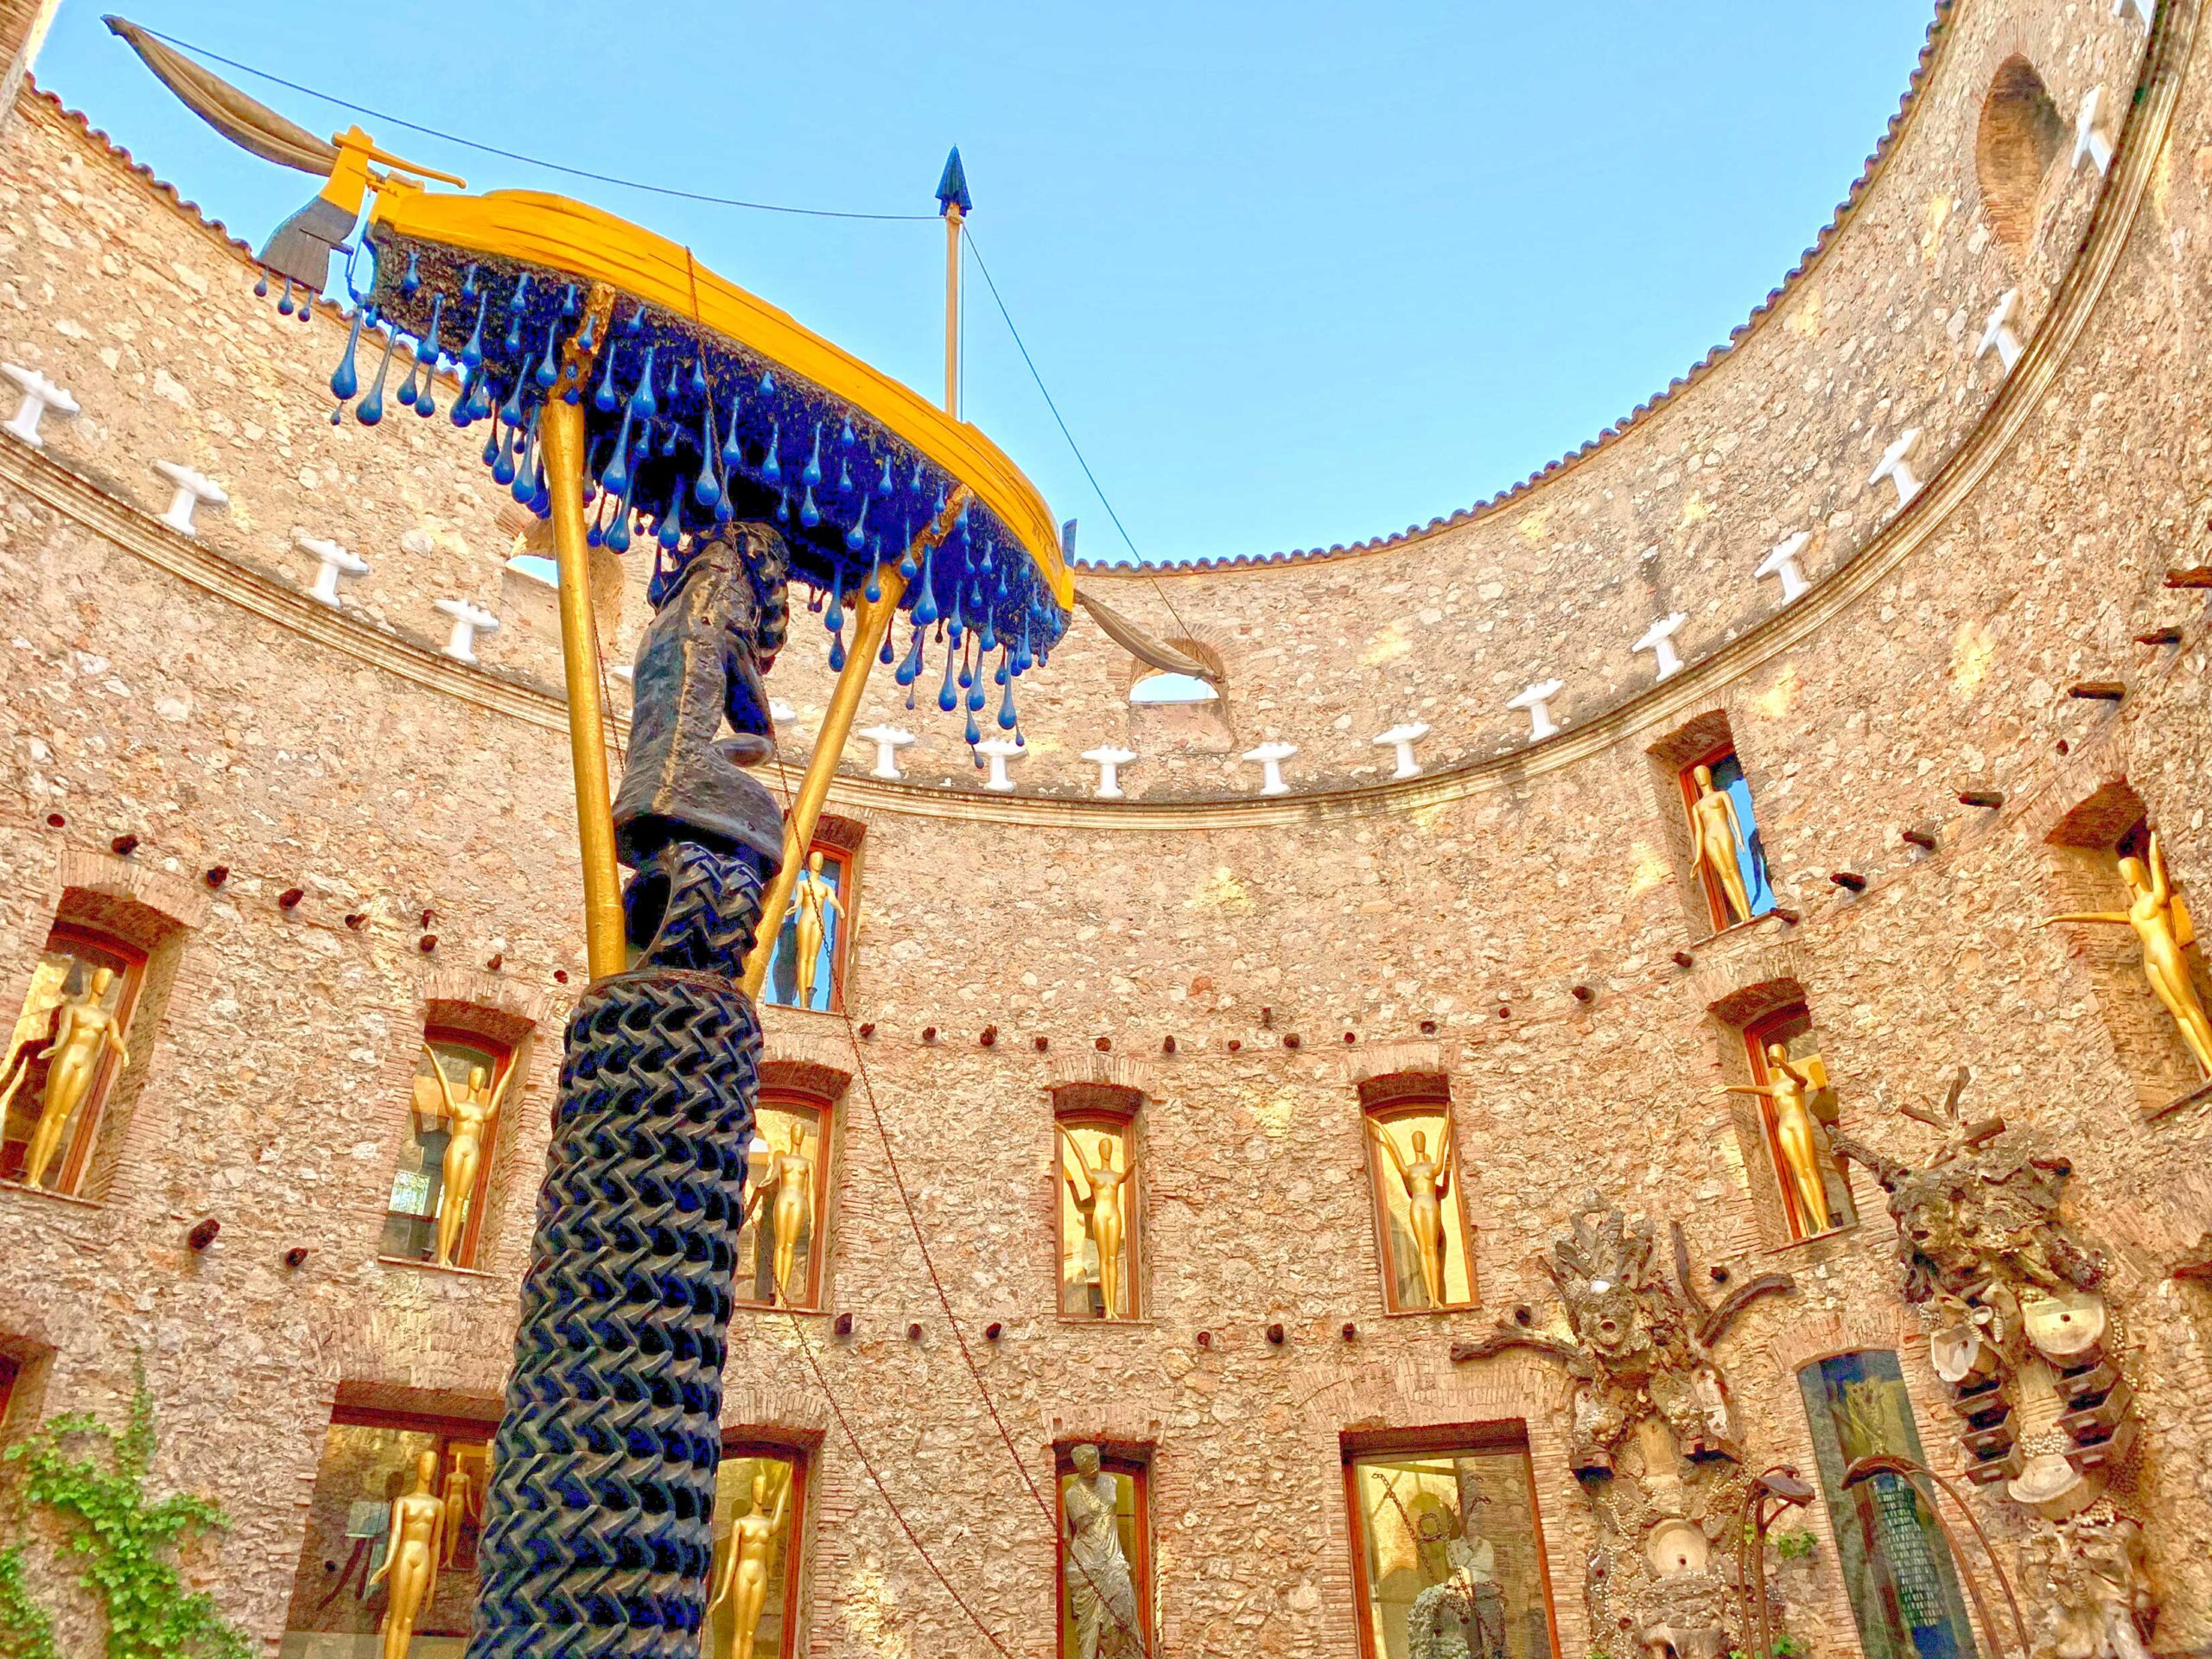 A memorable private guided tour of Dali Museum with Paladar y Tomar